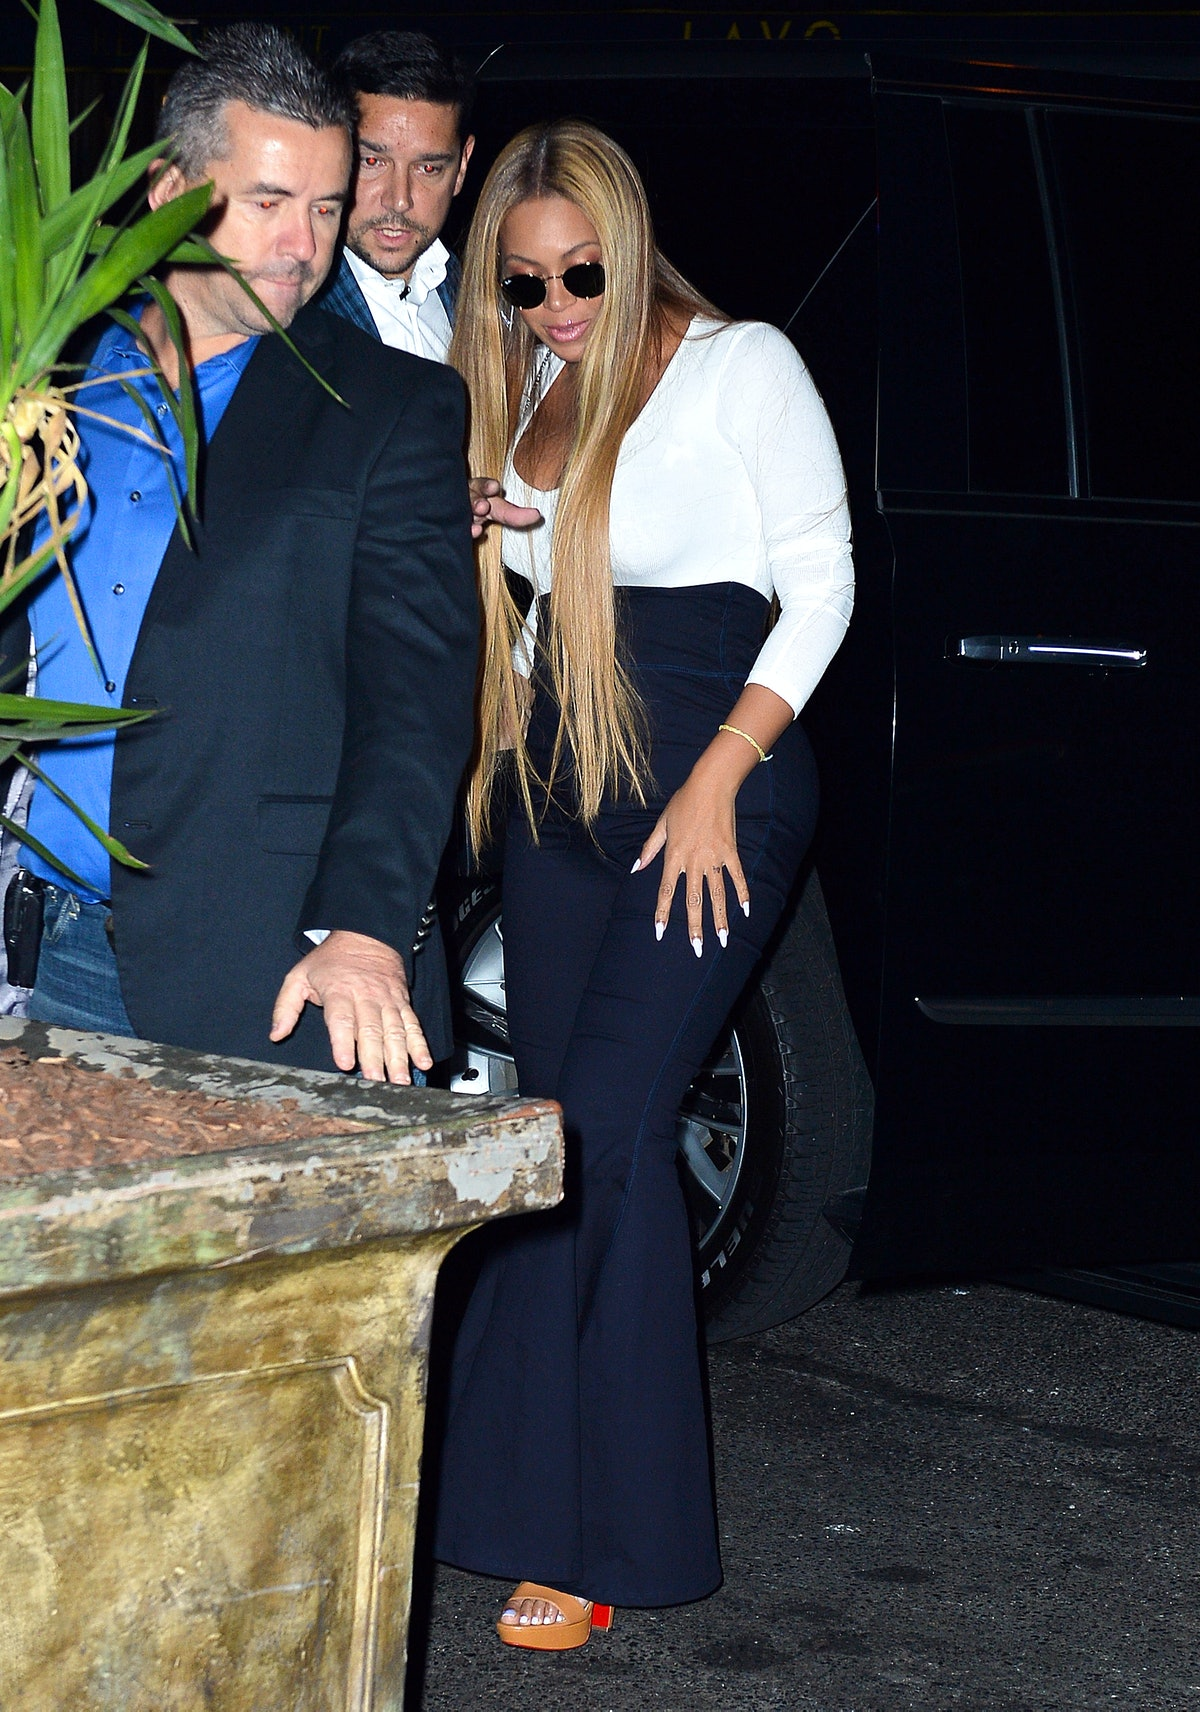 Beyonce looks striking as she arrives to the SNL after-party with Jay-Z at TAO nightclub in NYC